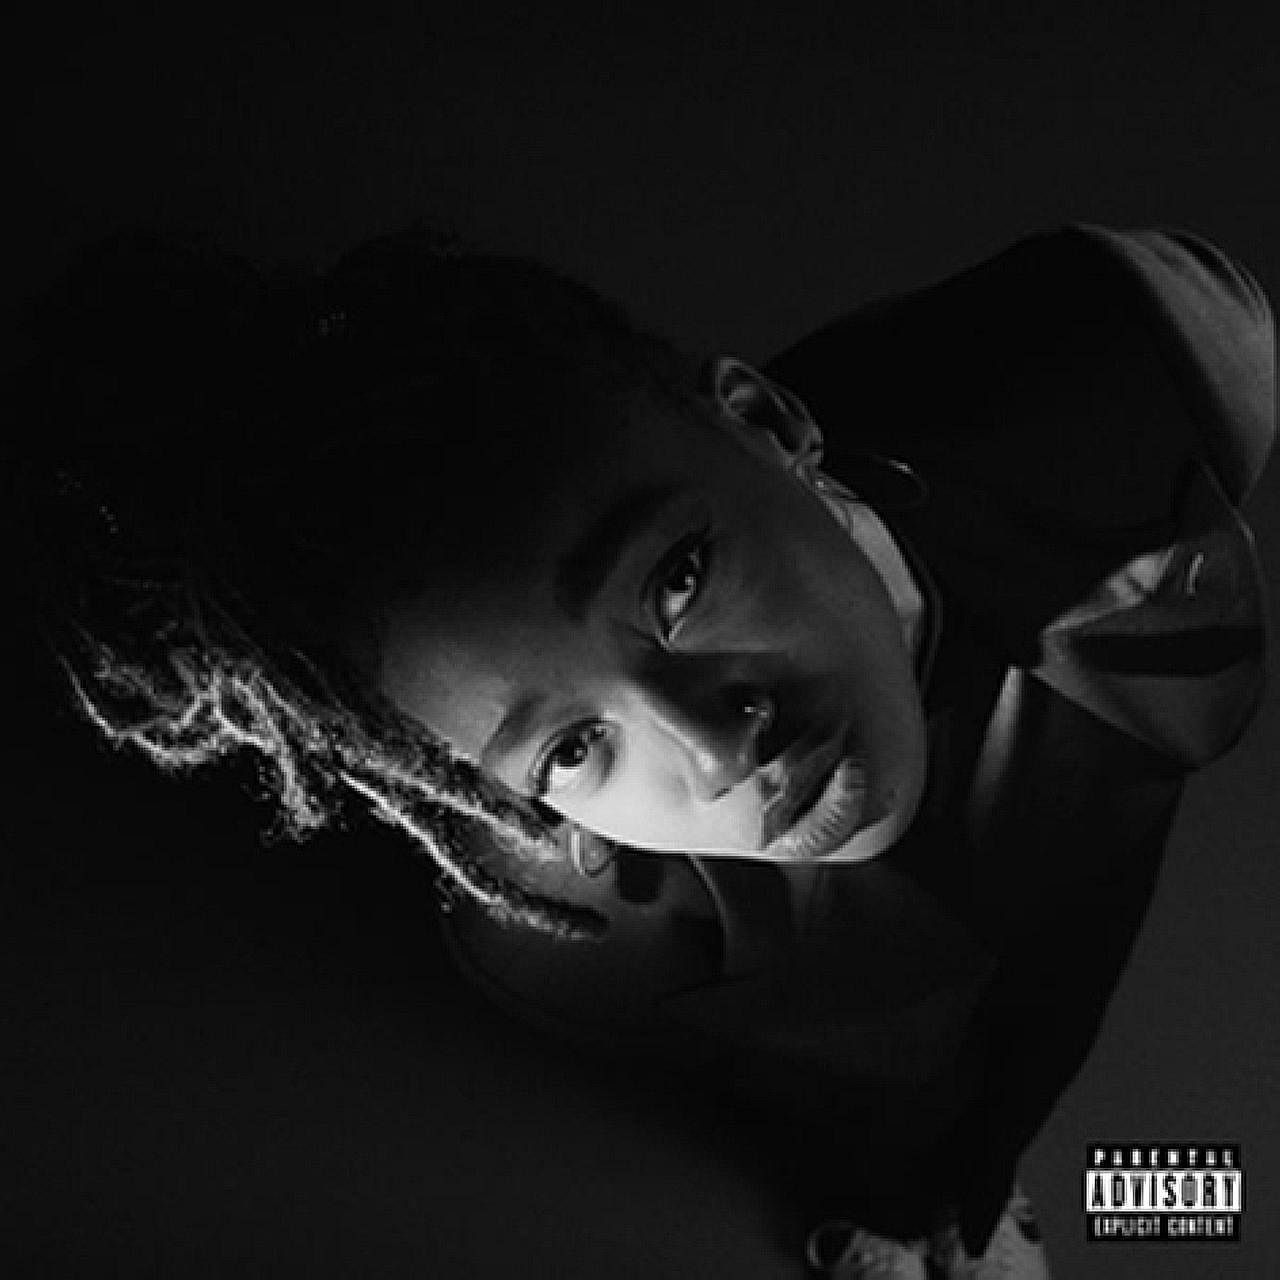 London rapper Little Simz navigates the travails of young adulthood with fiery fervour in Grey Area, her third album.